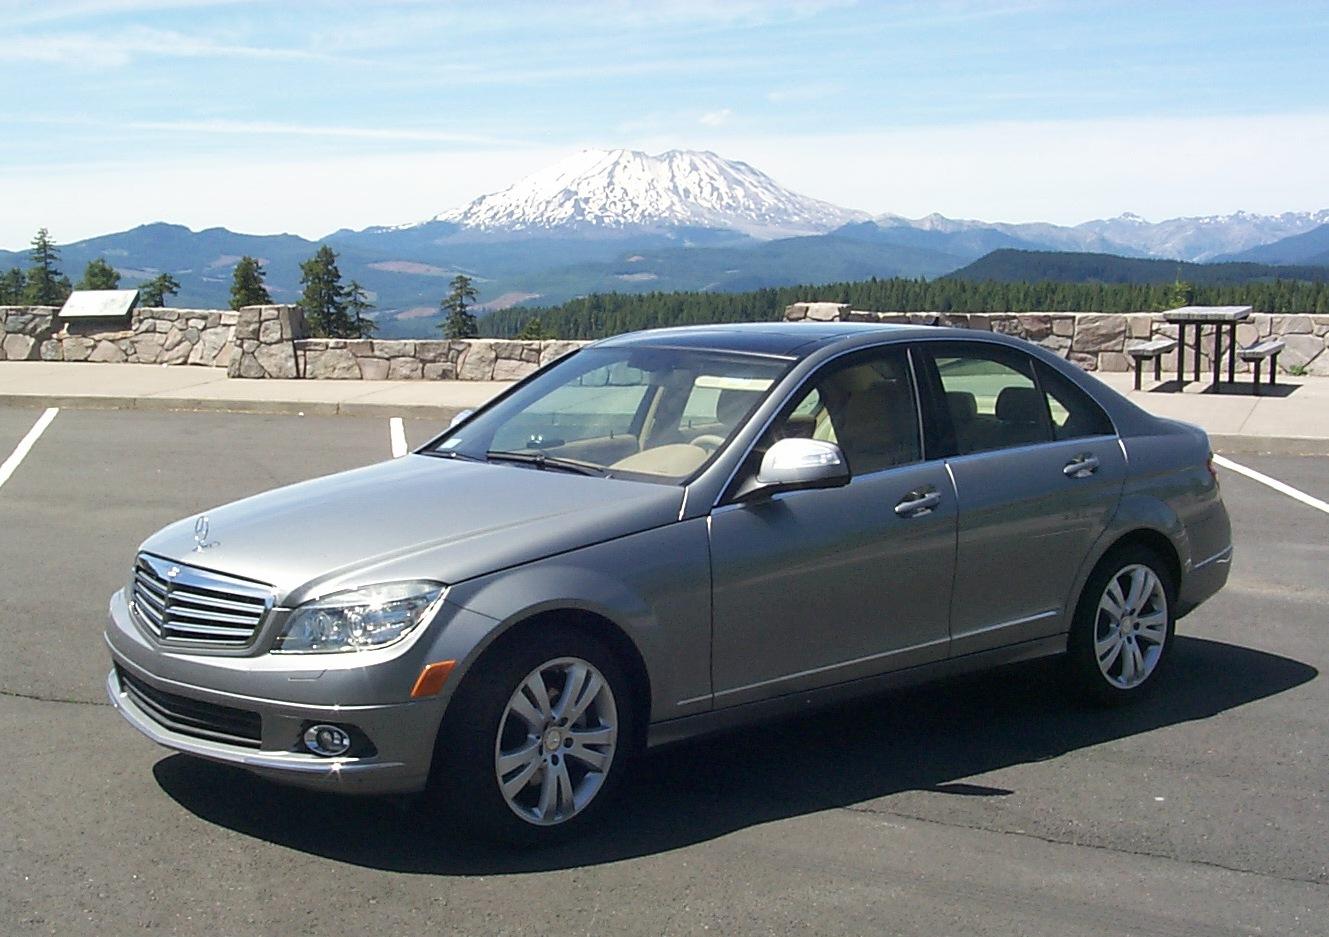 Mercedes benz c class 2008 review amazing pictures and for 2008 mercedes benz c230